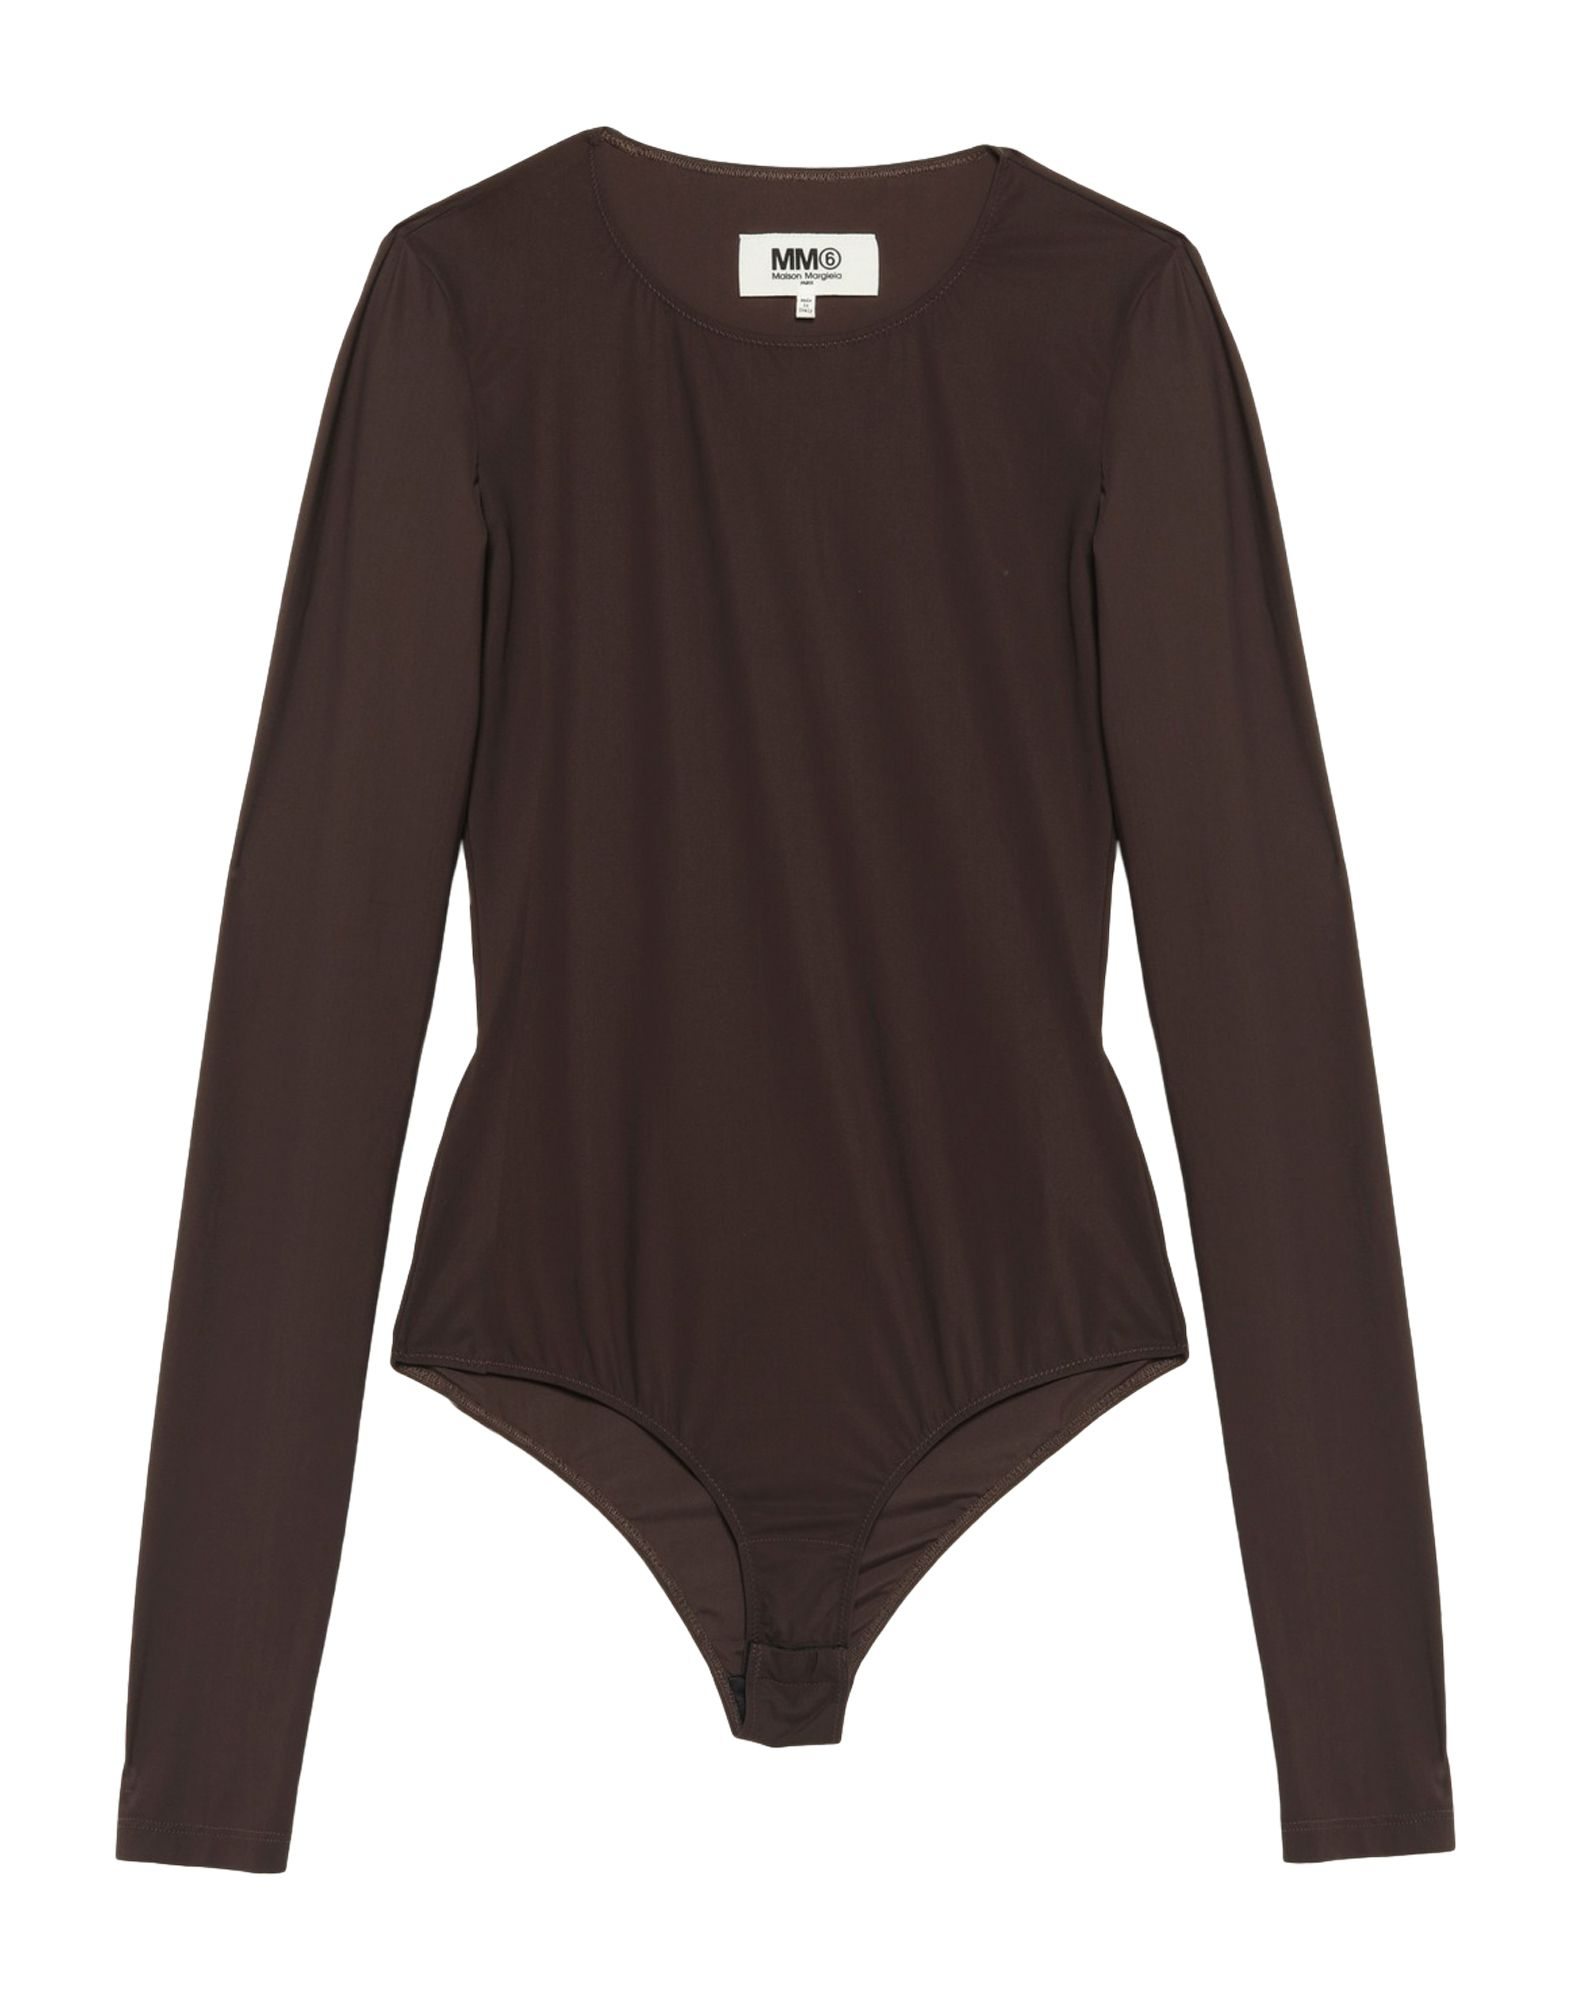 MM6 MAISON MARGIELA Bodysuits. synthetic jersey, no appliqués, round collar, solid color, long sleeves, no pockets, crotch of body, stretch. 73% Polyamide, 27% Elastane